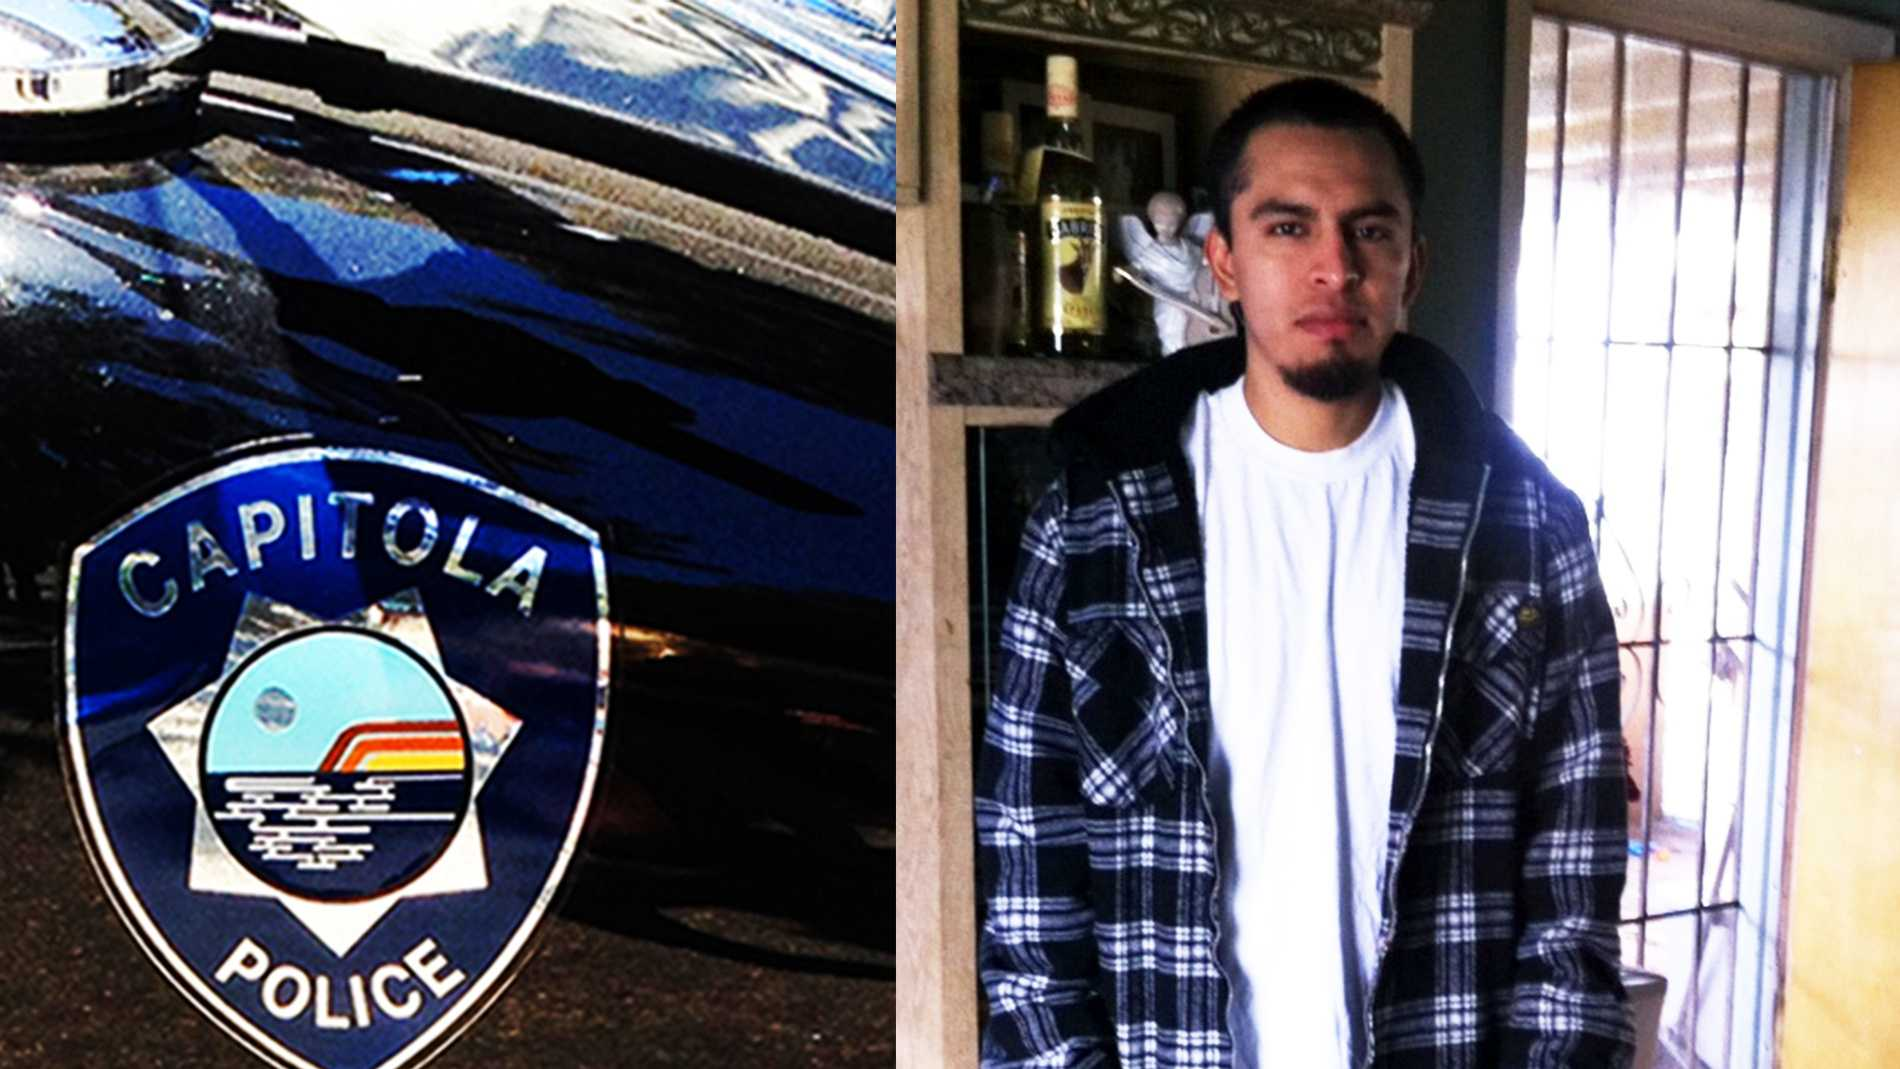 Alberto Julian Mendez is wanted by Capitola police on an attempted homicide charge.